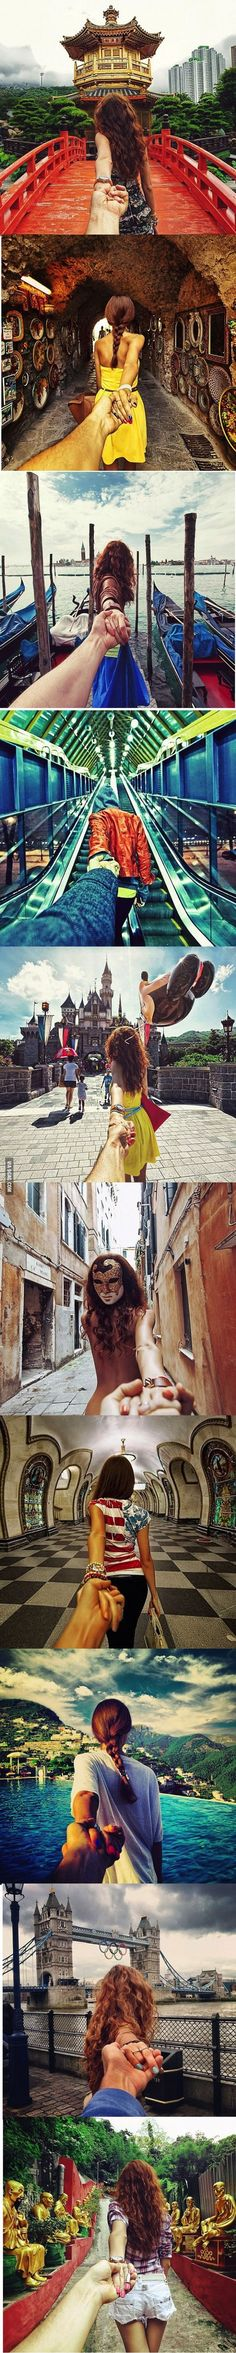 girlfriend leads him around the world